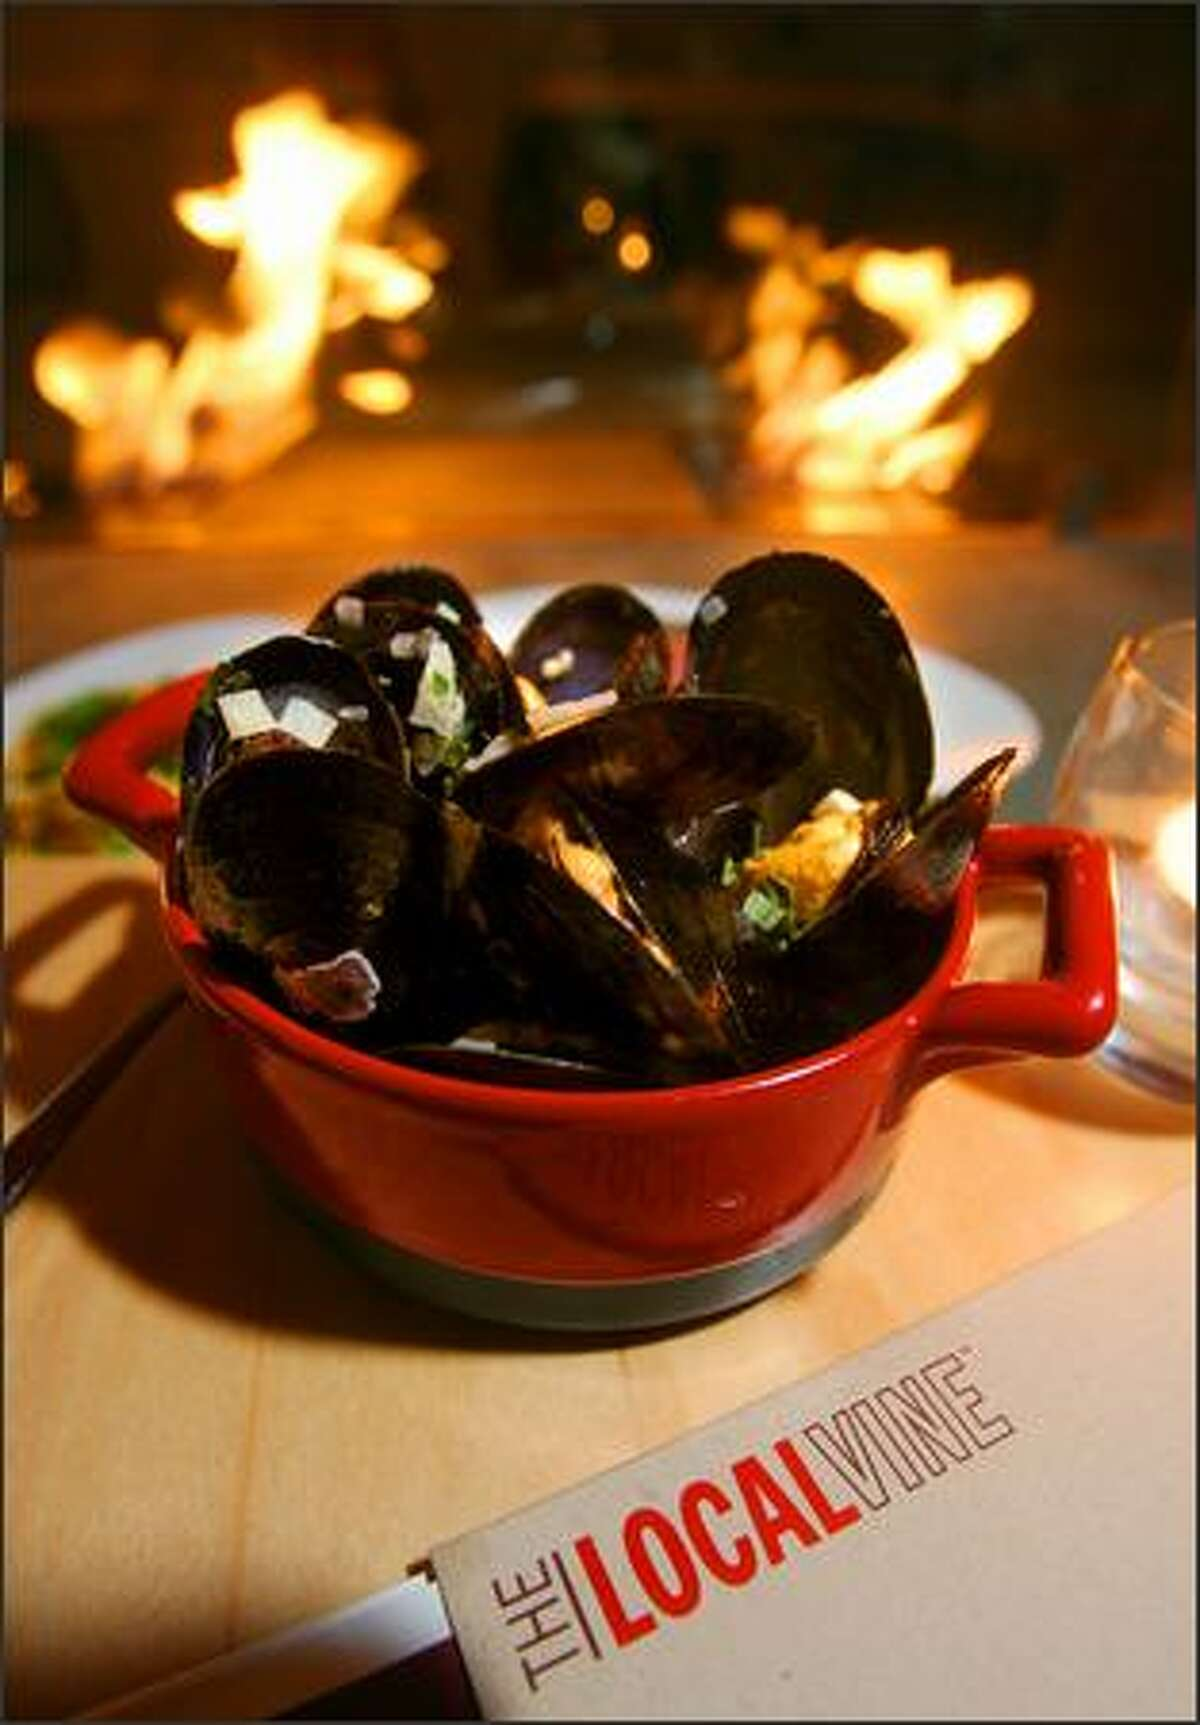 Taylor mussels are served in chardonnay butter and herbs. The menu is continuing to evolve.